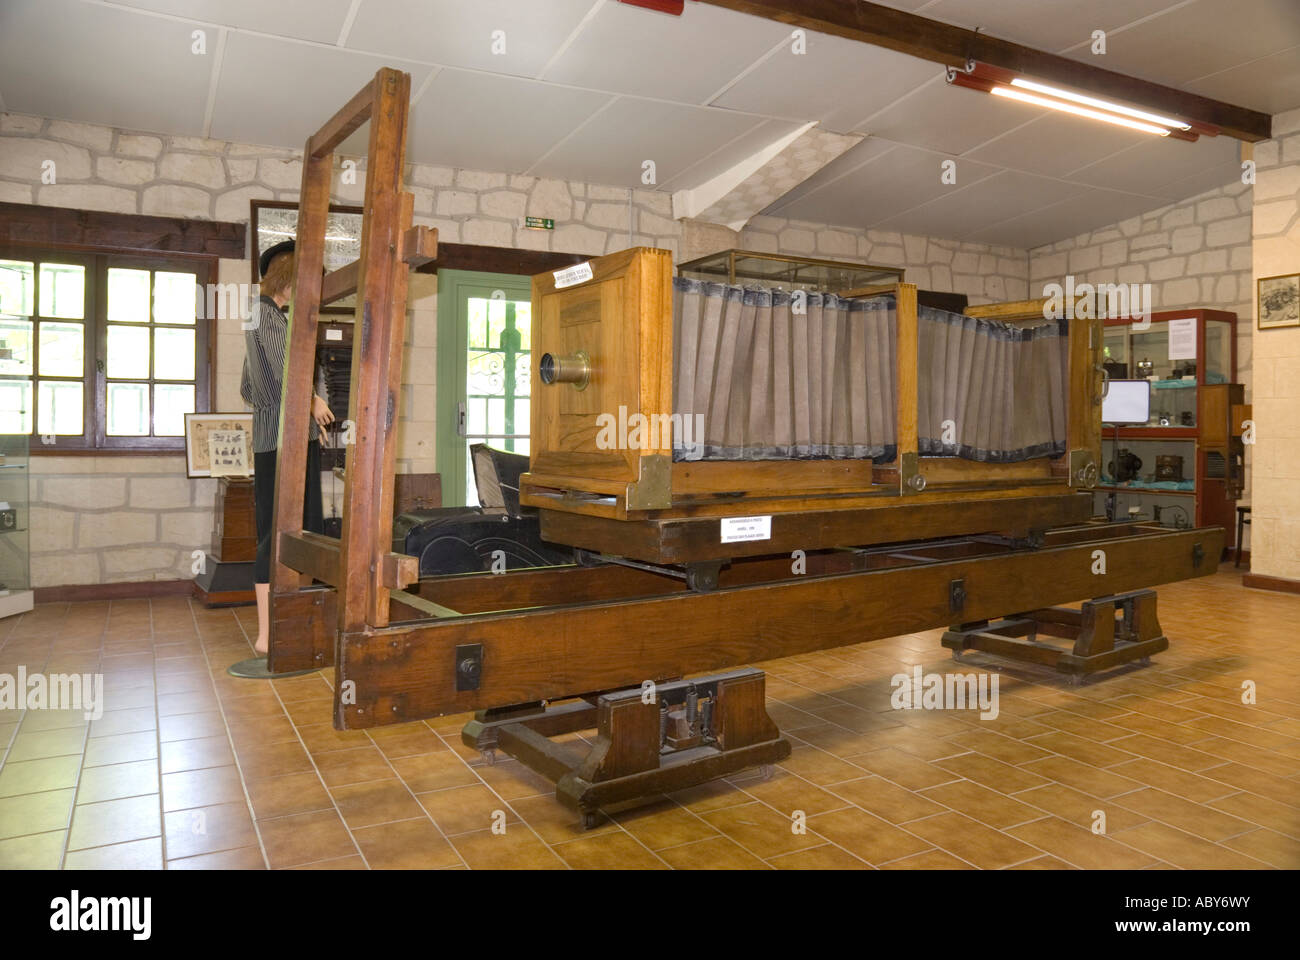 Museum of Technology near Uzes Gard France horizontal photographic enlarger or repro camera used for plate making - Stock Image